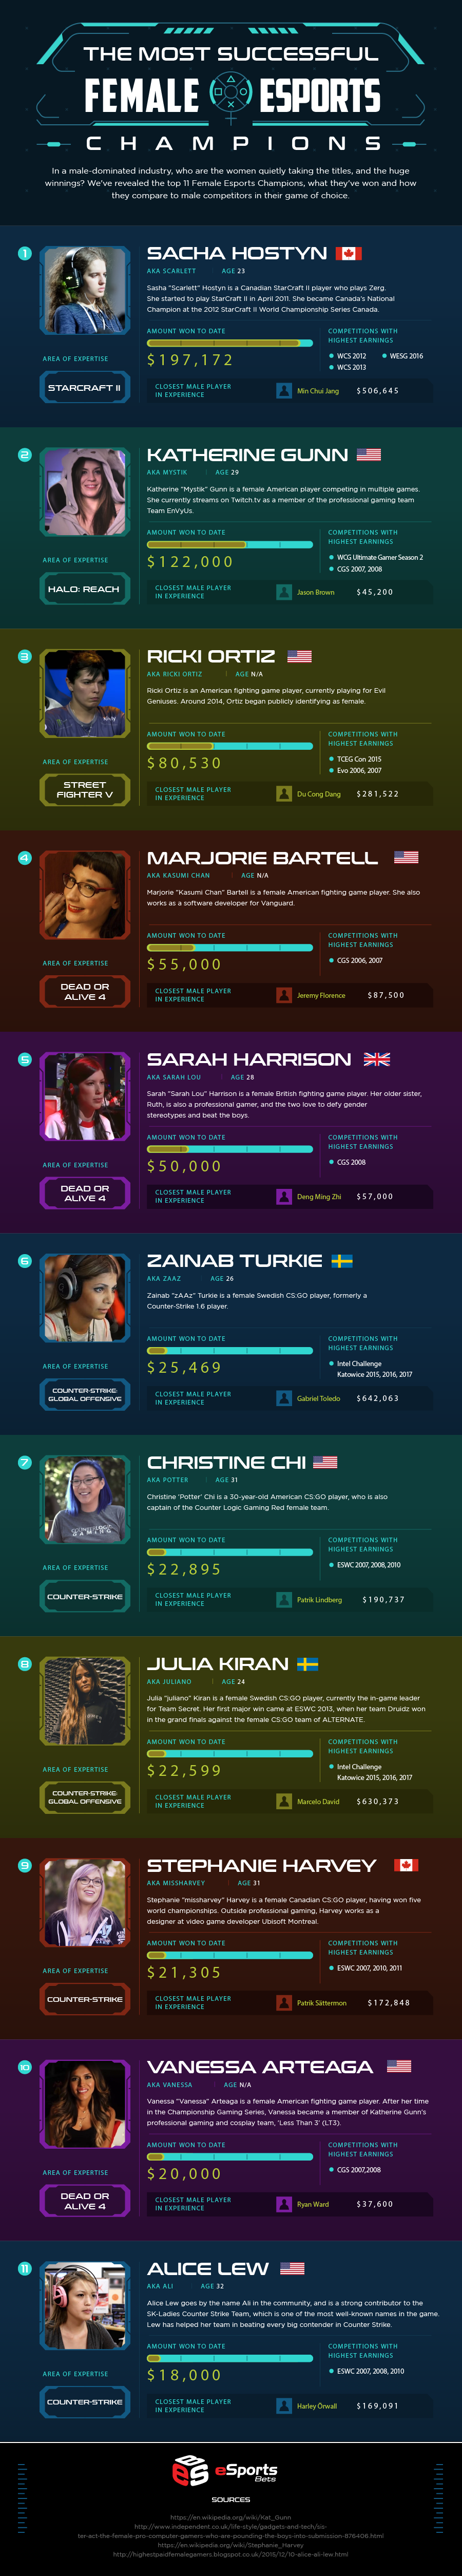 the 11 Top Female Esports Champions